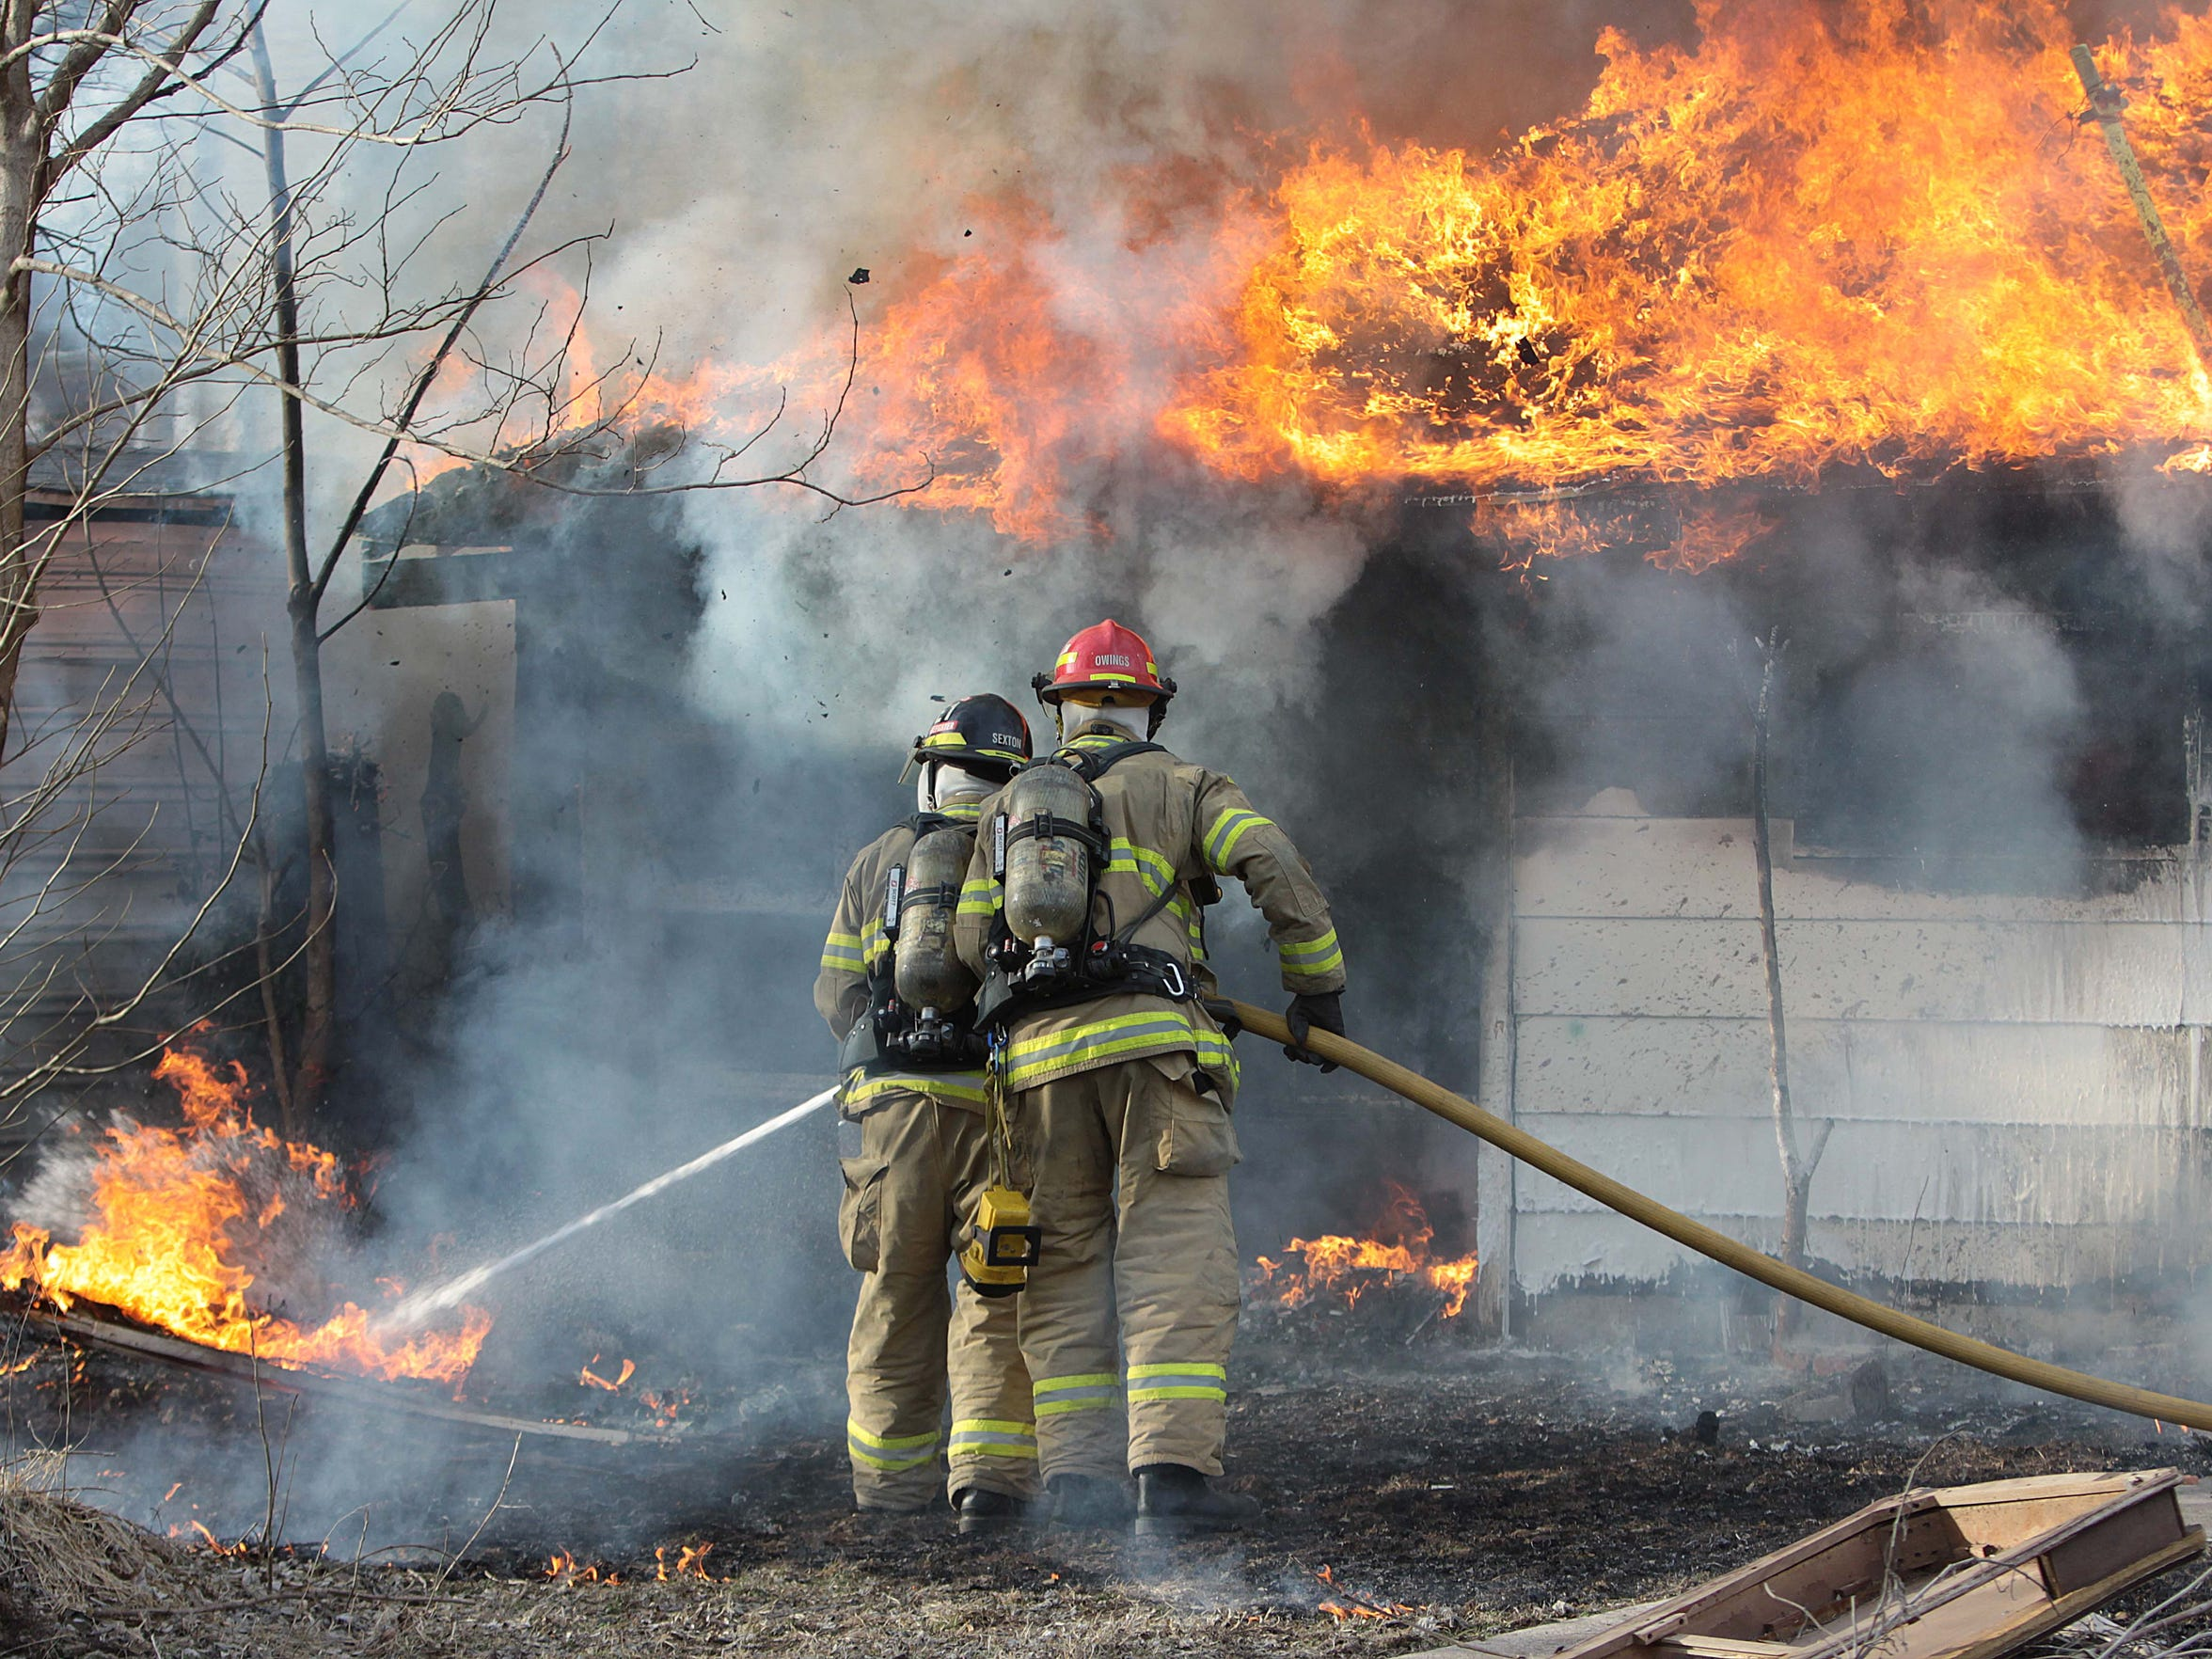 Springfield police and firefighters agreed to pay for